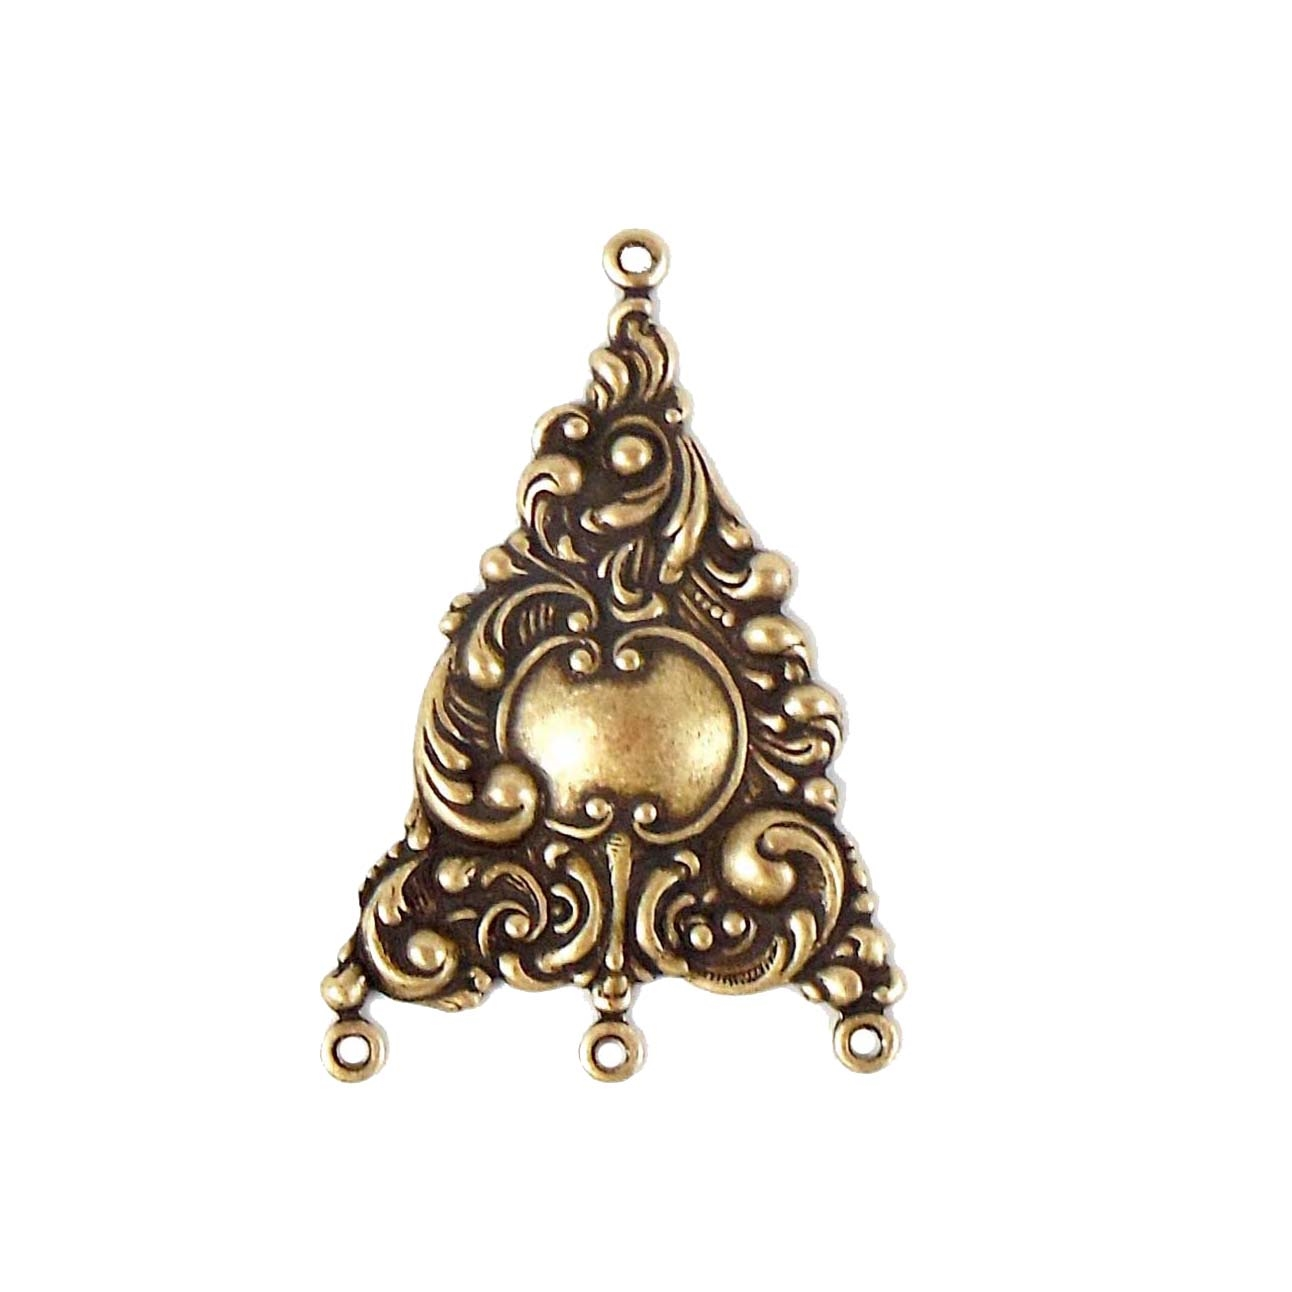 victorian gypsy ear drops, brass ox, antique brass, brass, brass stamping, ear drops, pendant, earrings, floral, victorian ,gypsy, us made, nickel free, 31x25mm, jewelry supplies, vintage supplies, jewelry findings, leafy motif, jewelry making, 04748